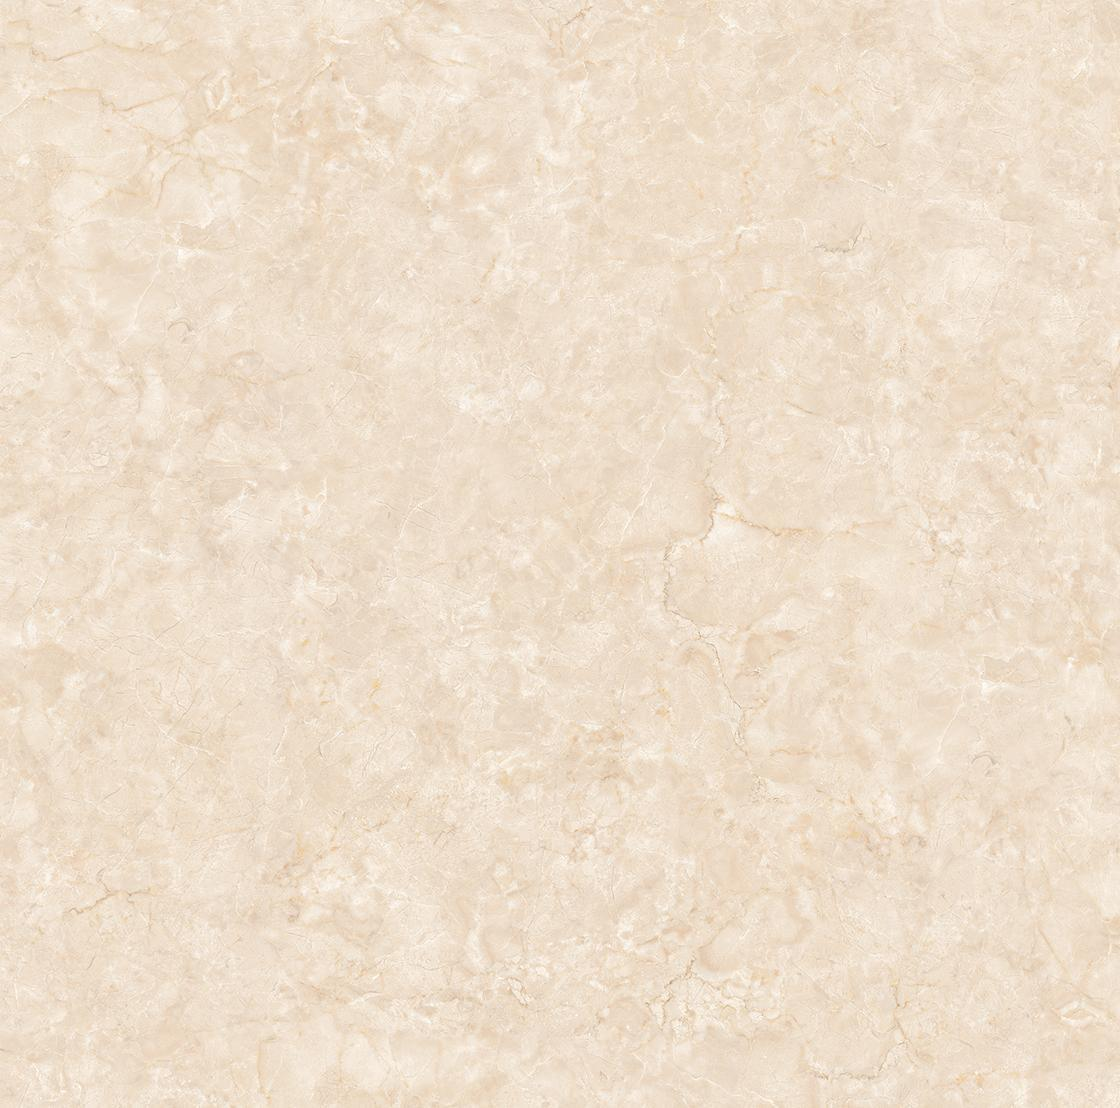 Copy Marble Design of Full Polished Glazed Tiles with CCC